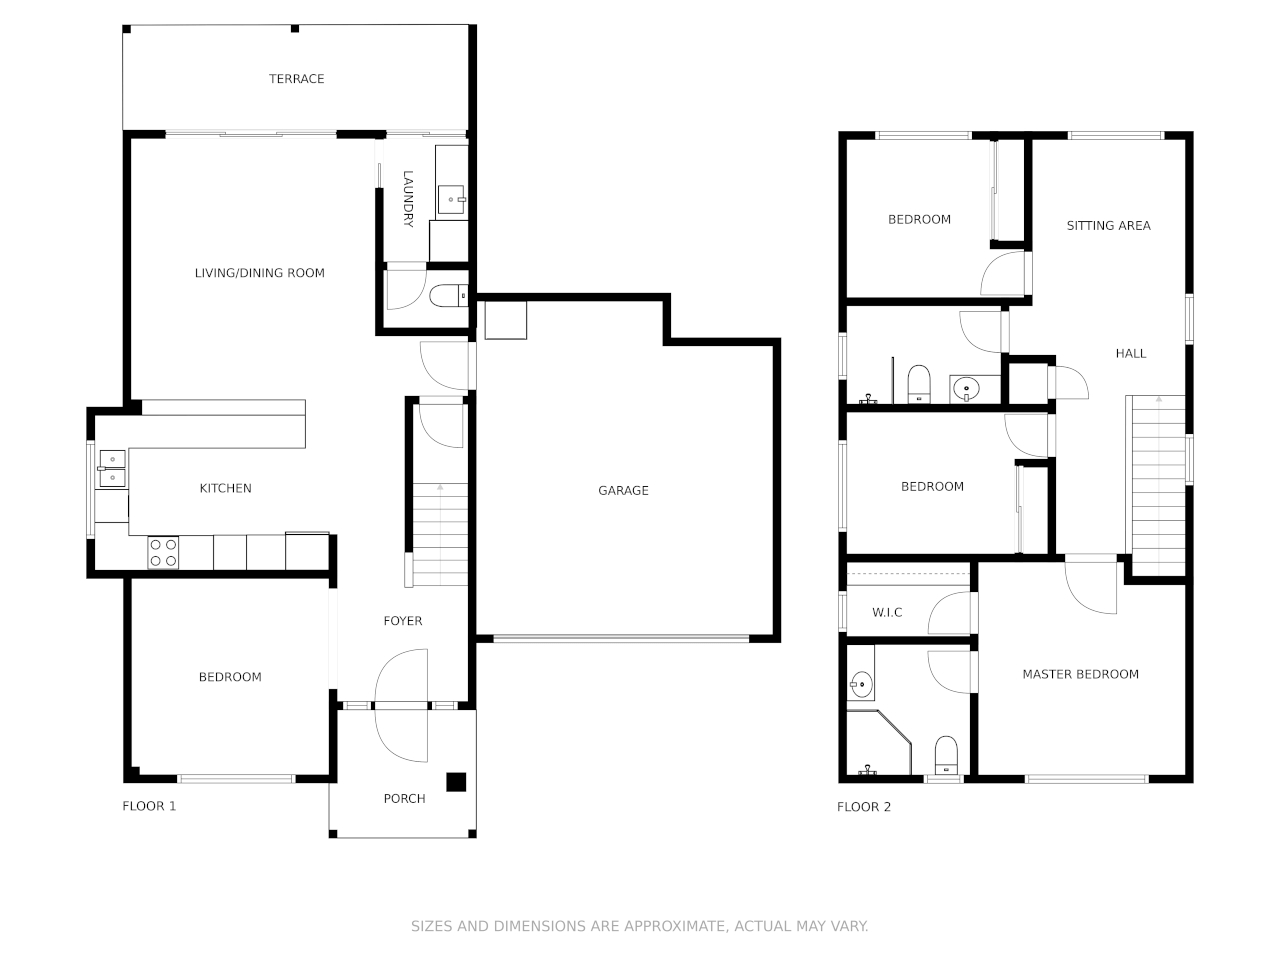 Black and white floor plan of an apartment with a garage and no dimensions.